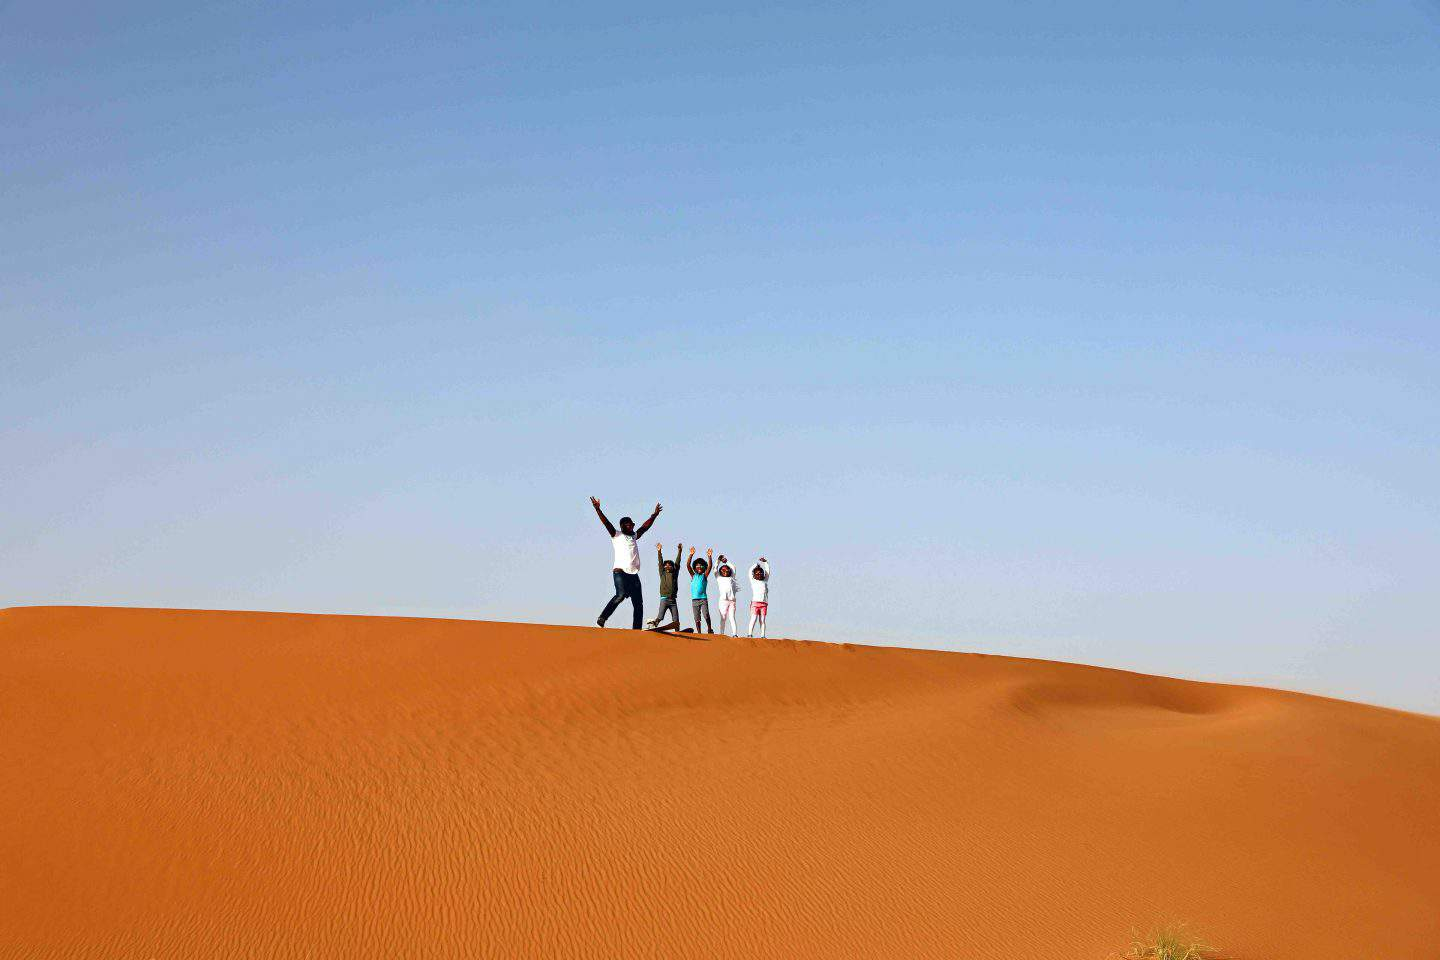 morocco - what you need to know about camoing in the sahara desert with kids